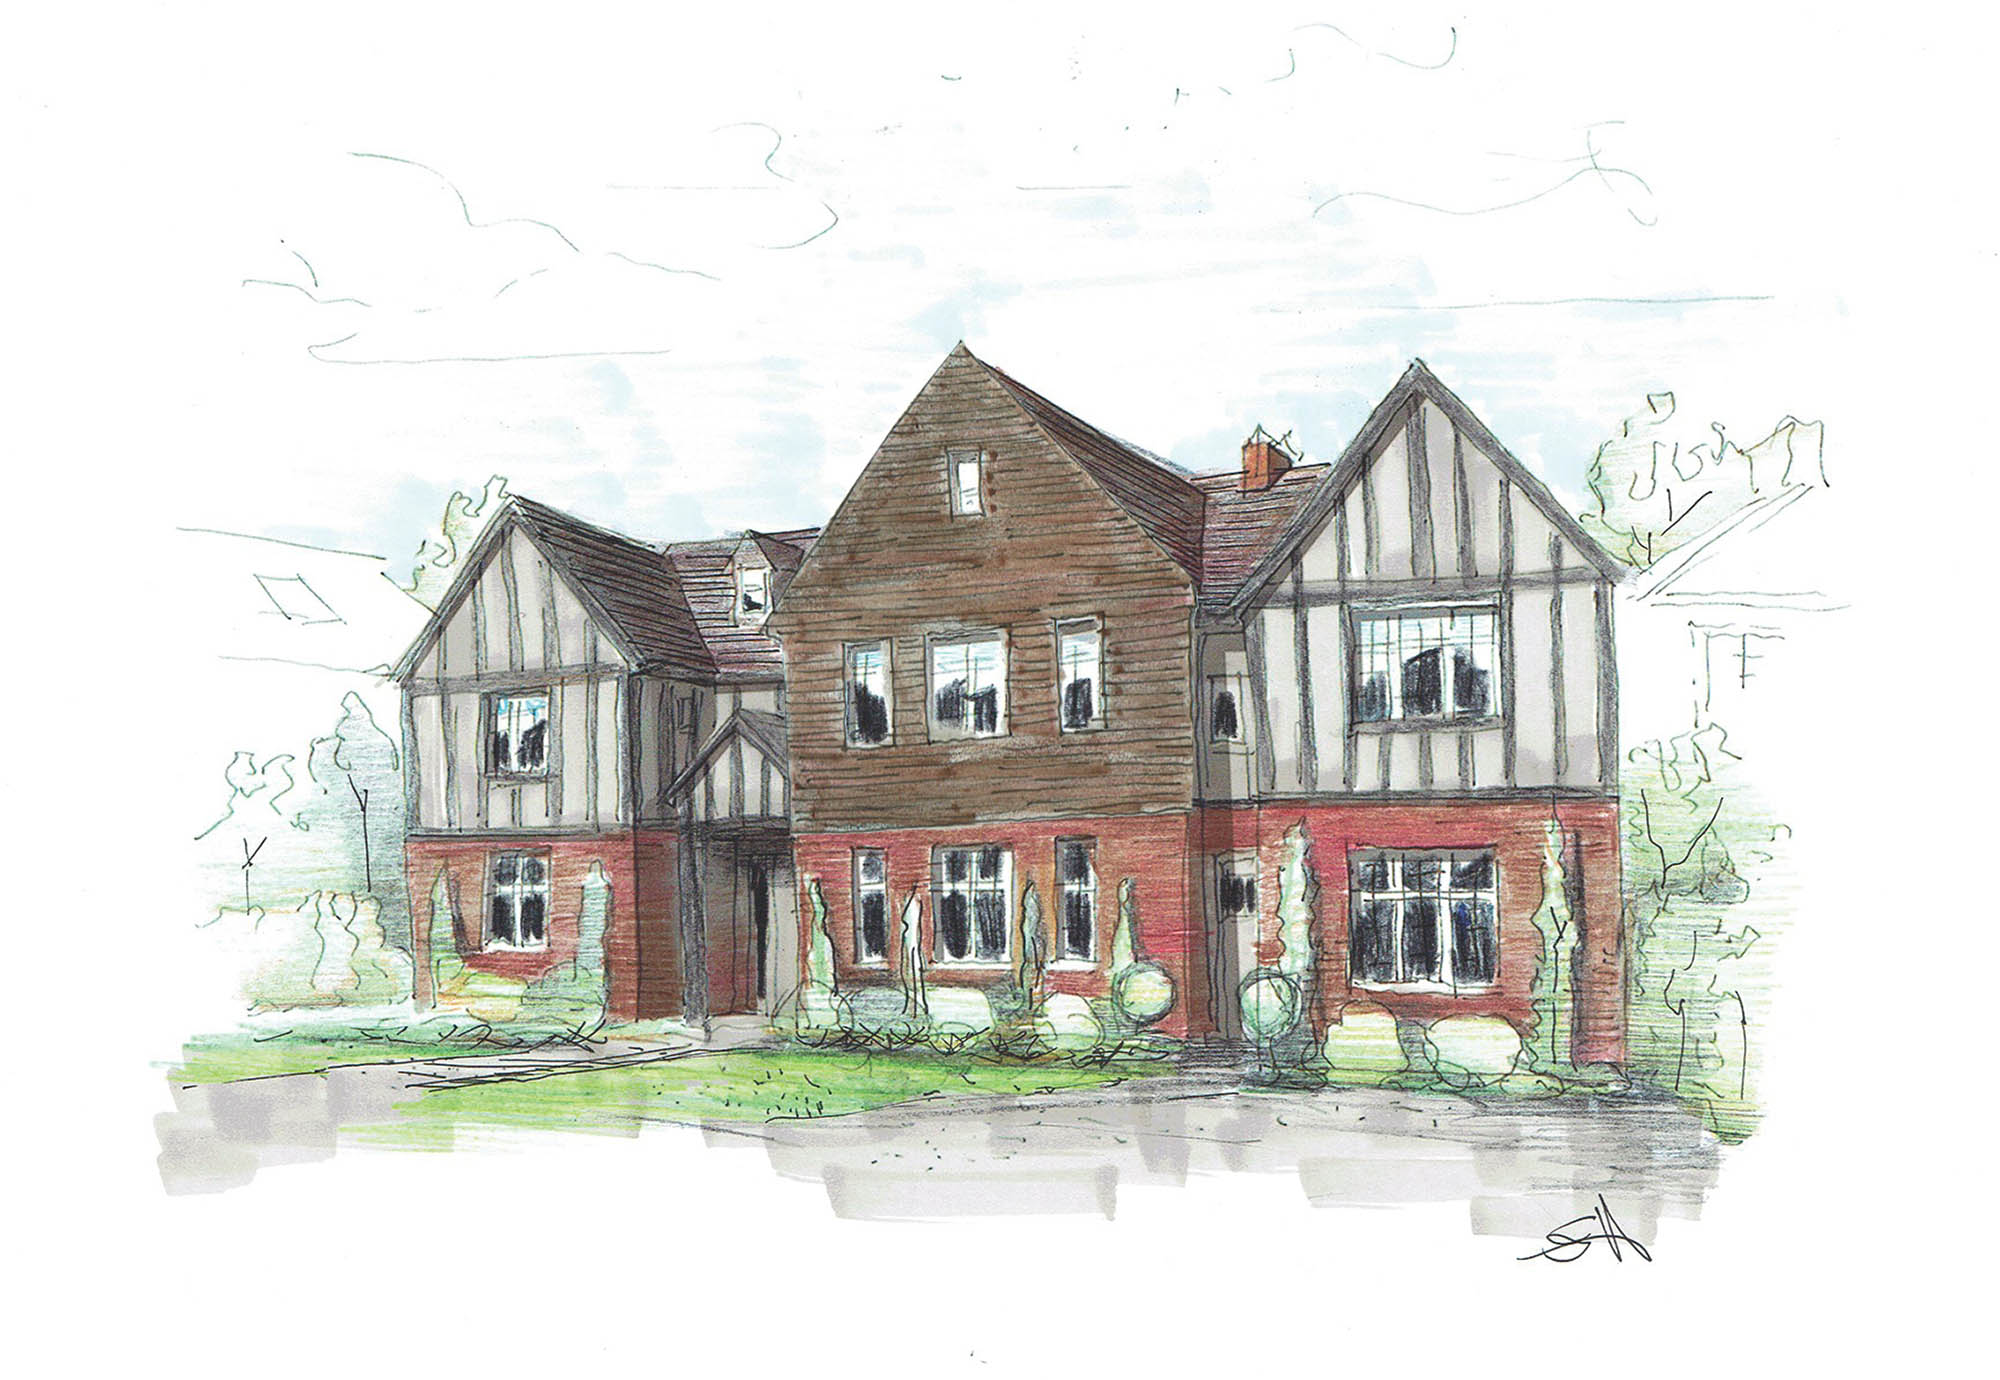 Front elevation design sketch / architecture plan for Putney restoration project